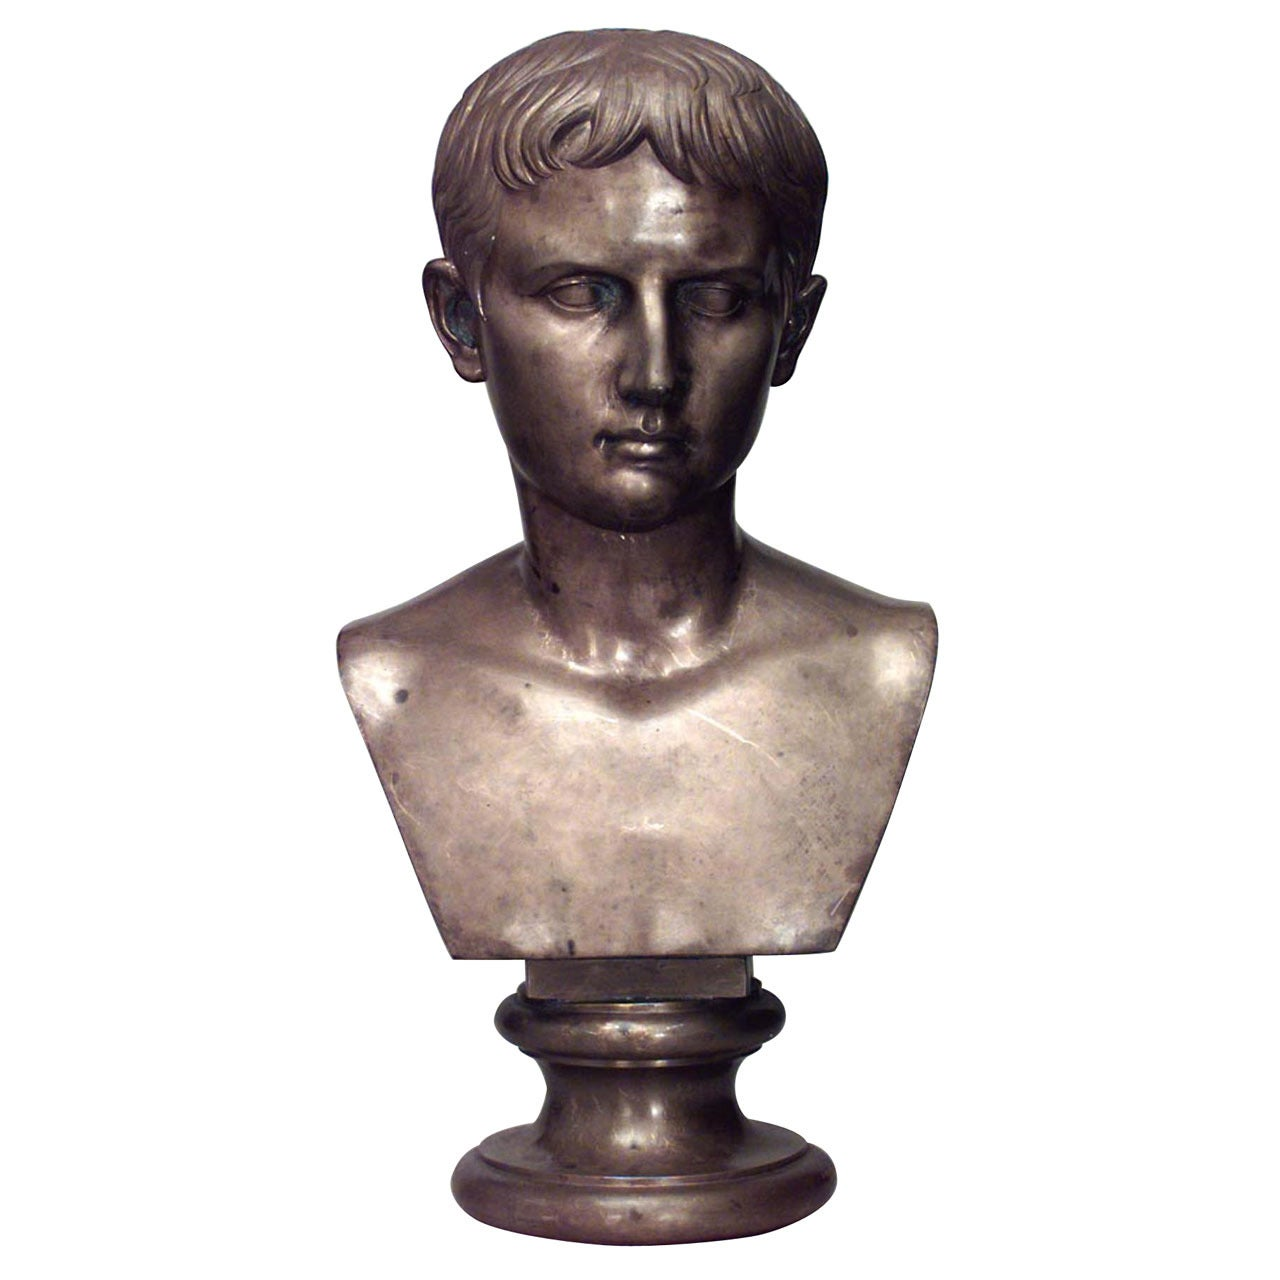 Life-Sized 19th c. Italian Bust of Augustus Signed by Boschetti